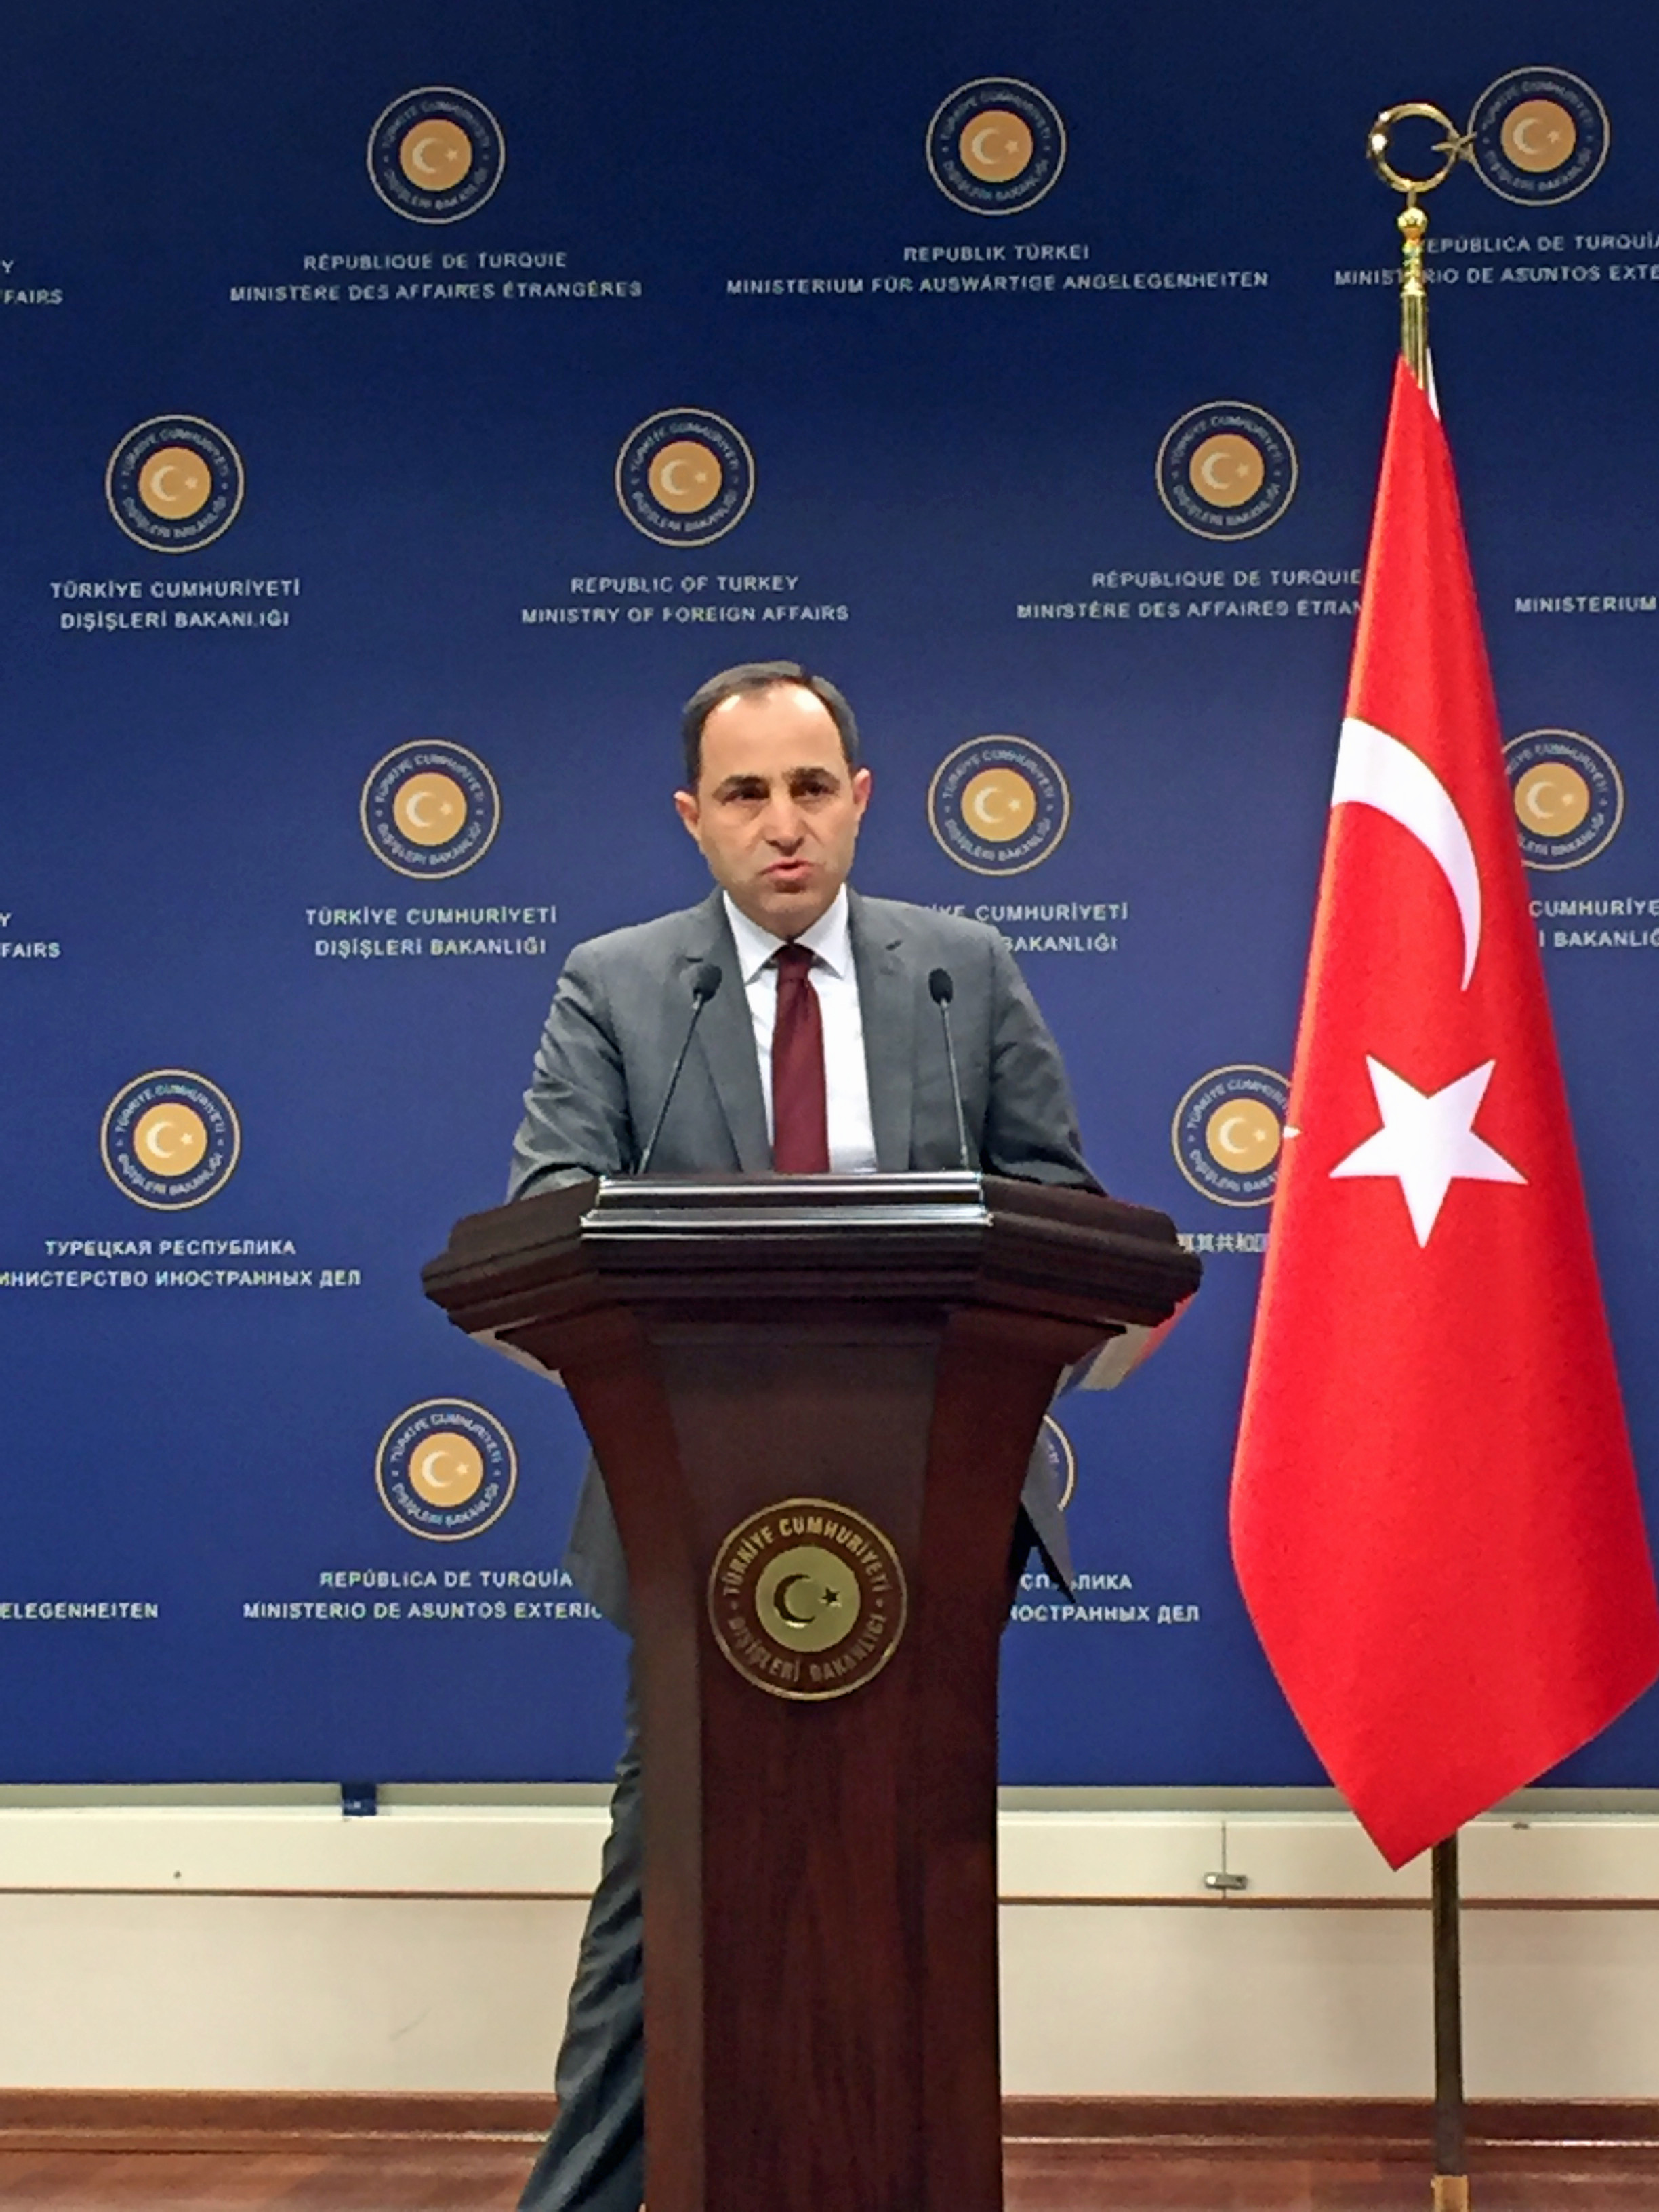 Turkey Ministry Of foreign Affairs Collection File Tanju Bilgi§ Wikimedia Mons